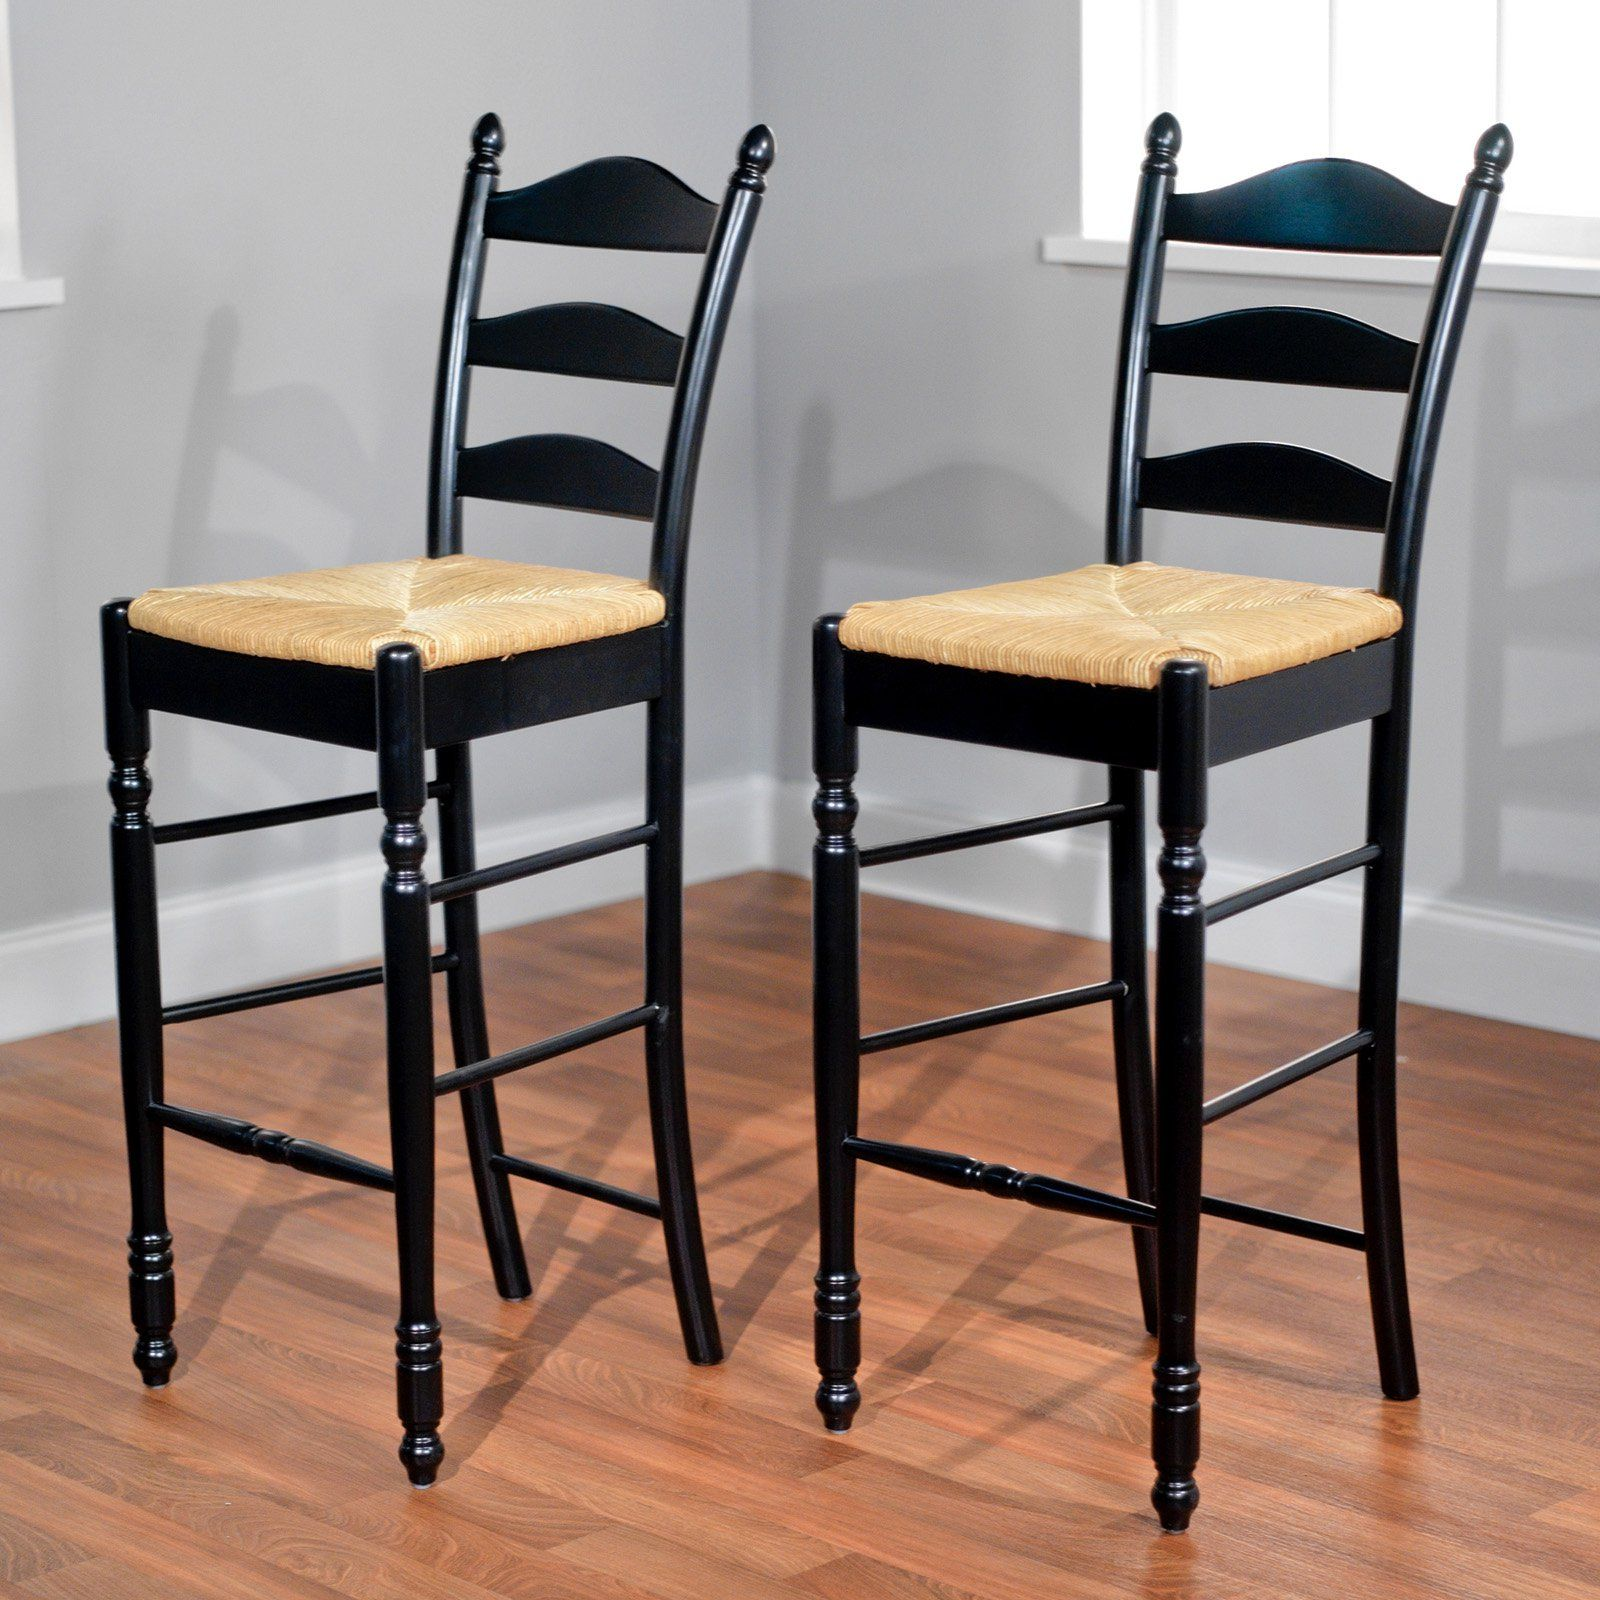 30 in. Ladder Back Bar Stool Set of 2 (With images